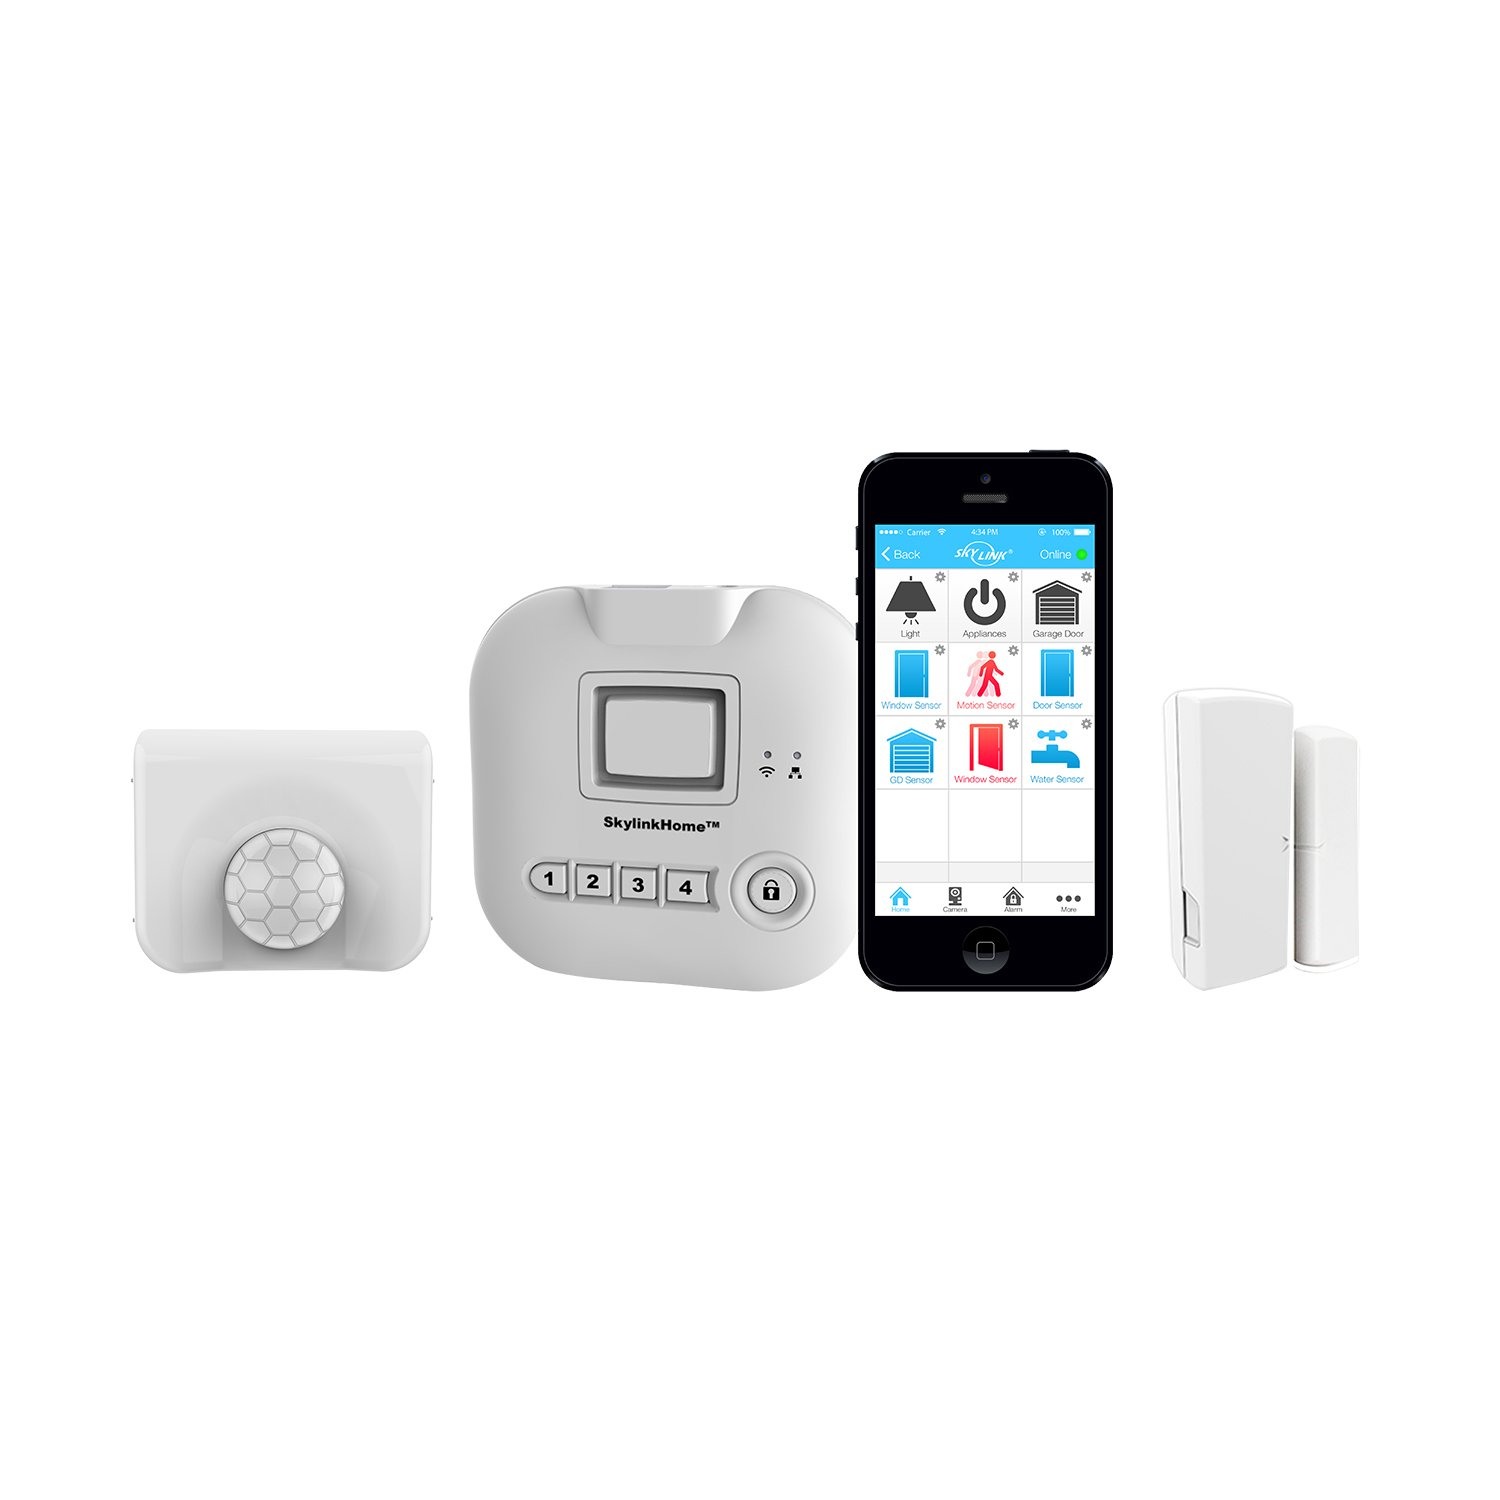 Skylink SK-150 Basic Starter Kit Connected Wireless Alarm Security and Home Automation System, Ios Iphone Android Smartphone, Echo Alexa and Ifttt Compatible with No Monthly Fees. , White